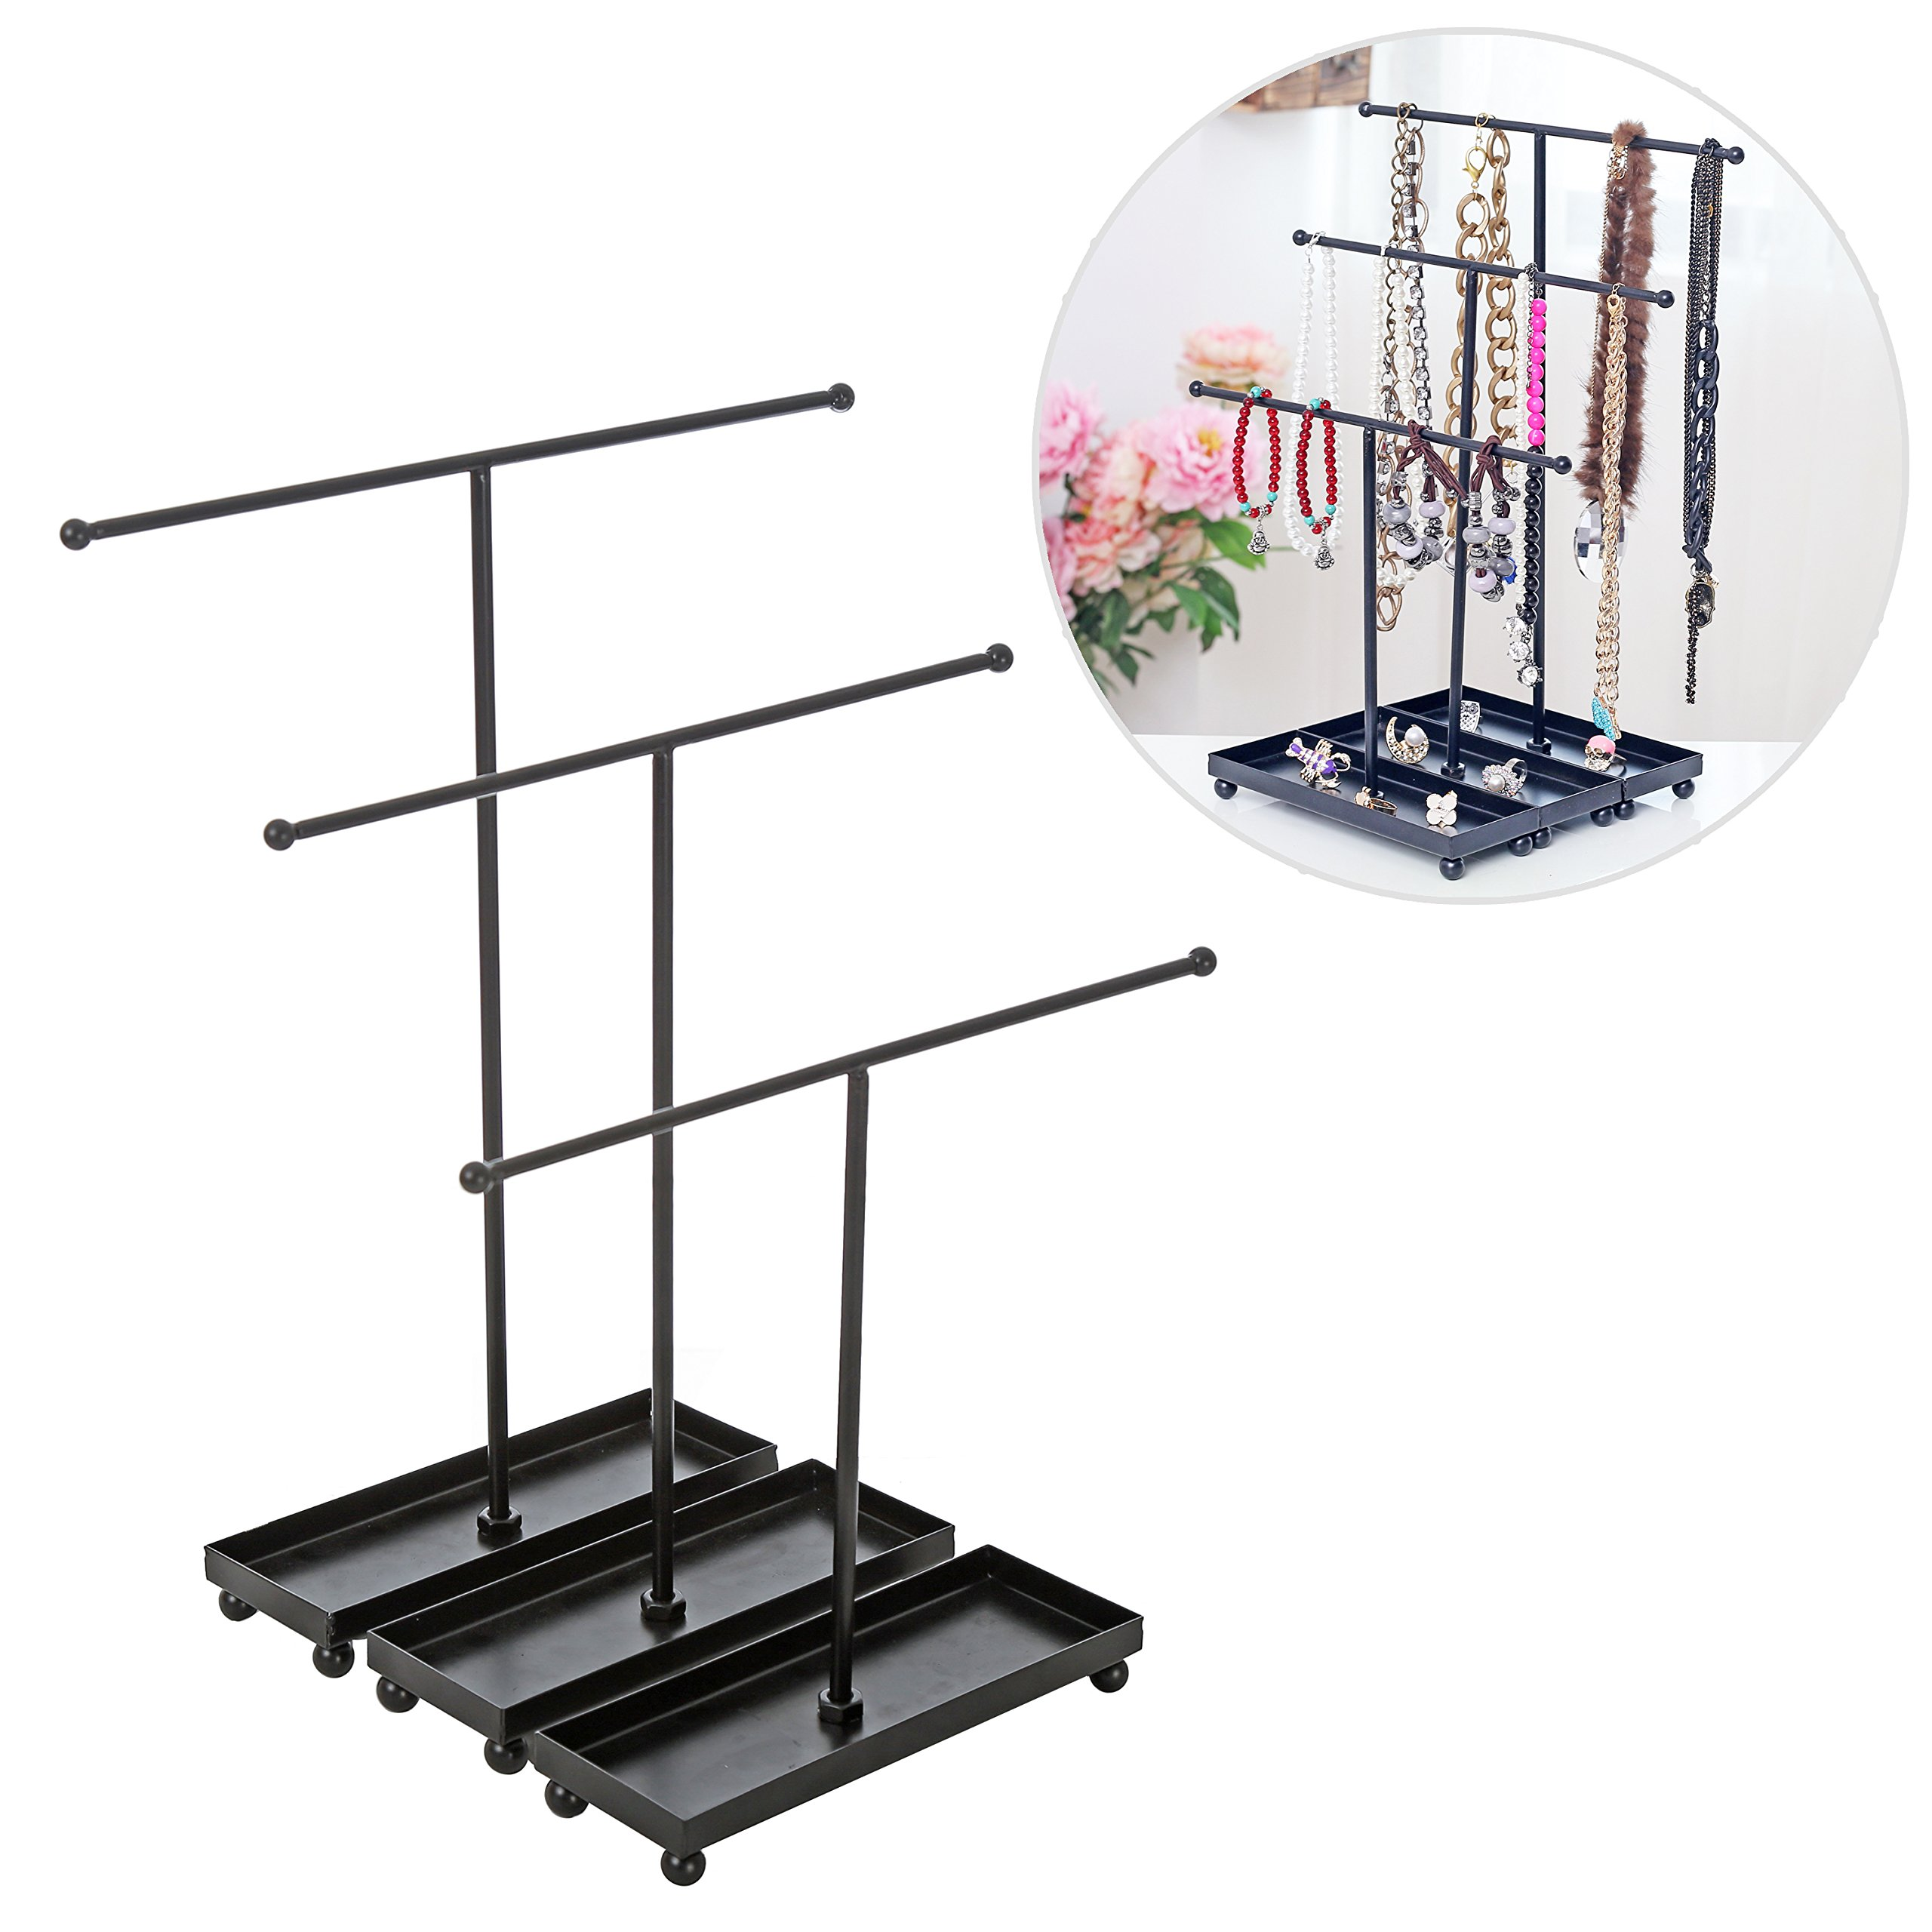 Set of 3 Modern Jewelry Organizers, Tabletop Bracelet & Necklace Hangers w/ Ring Dish, Black by MyGift (Image #2)